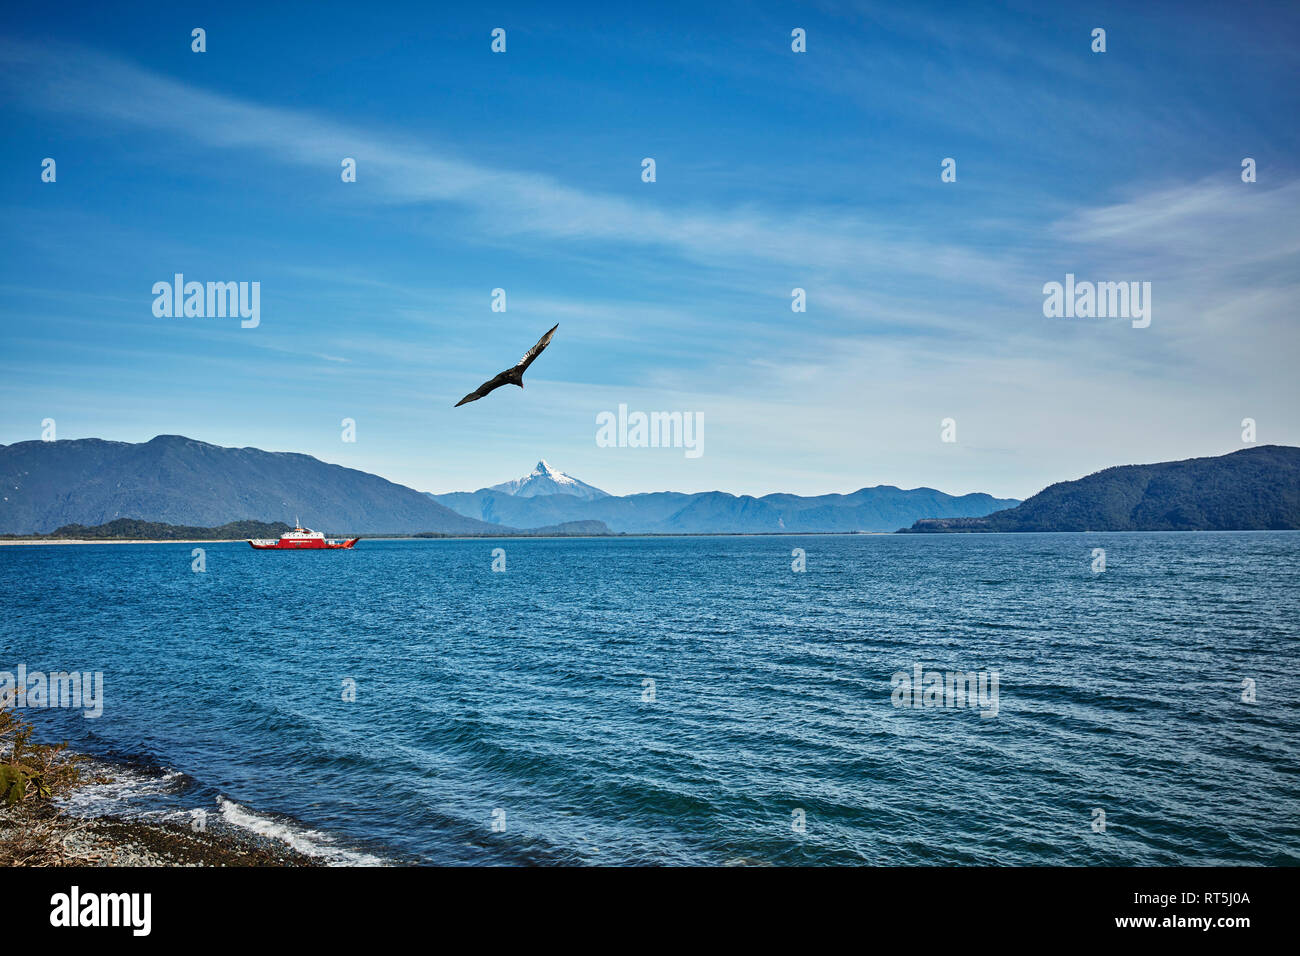 Chile, Chaiten, ferry in fjord at the Carretera Austral - Stock Image